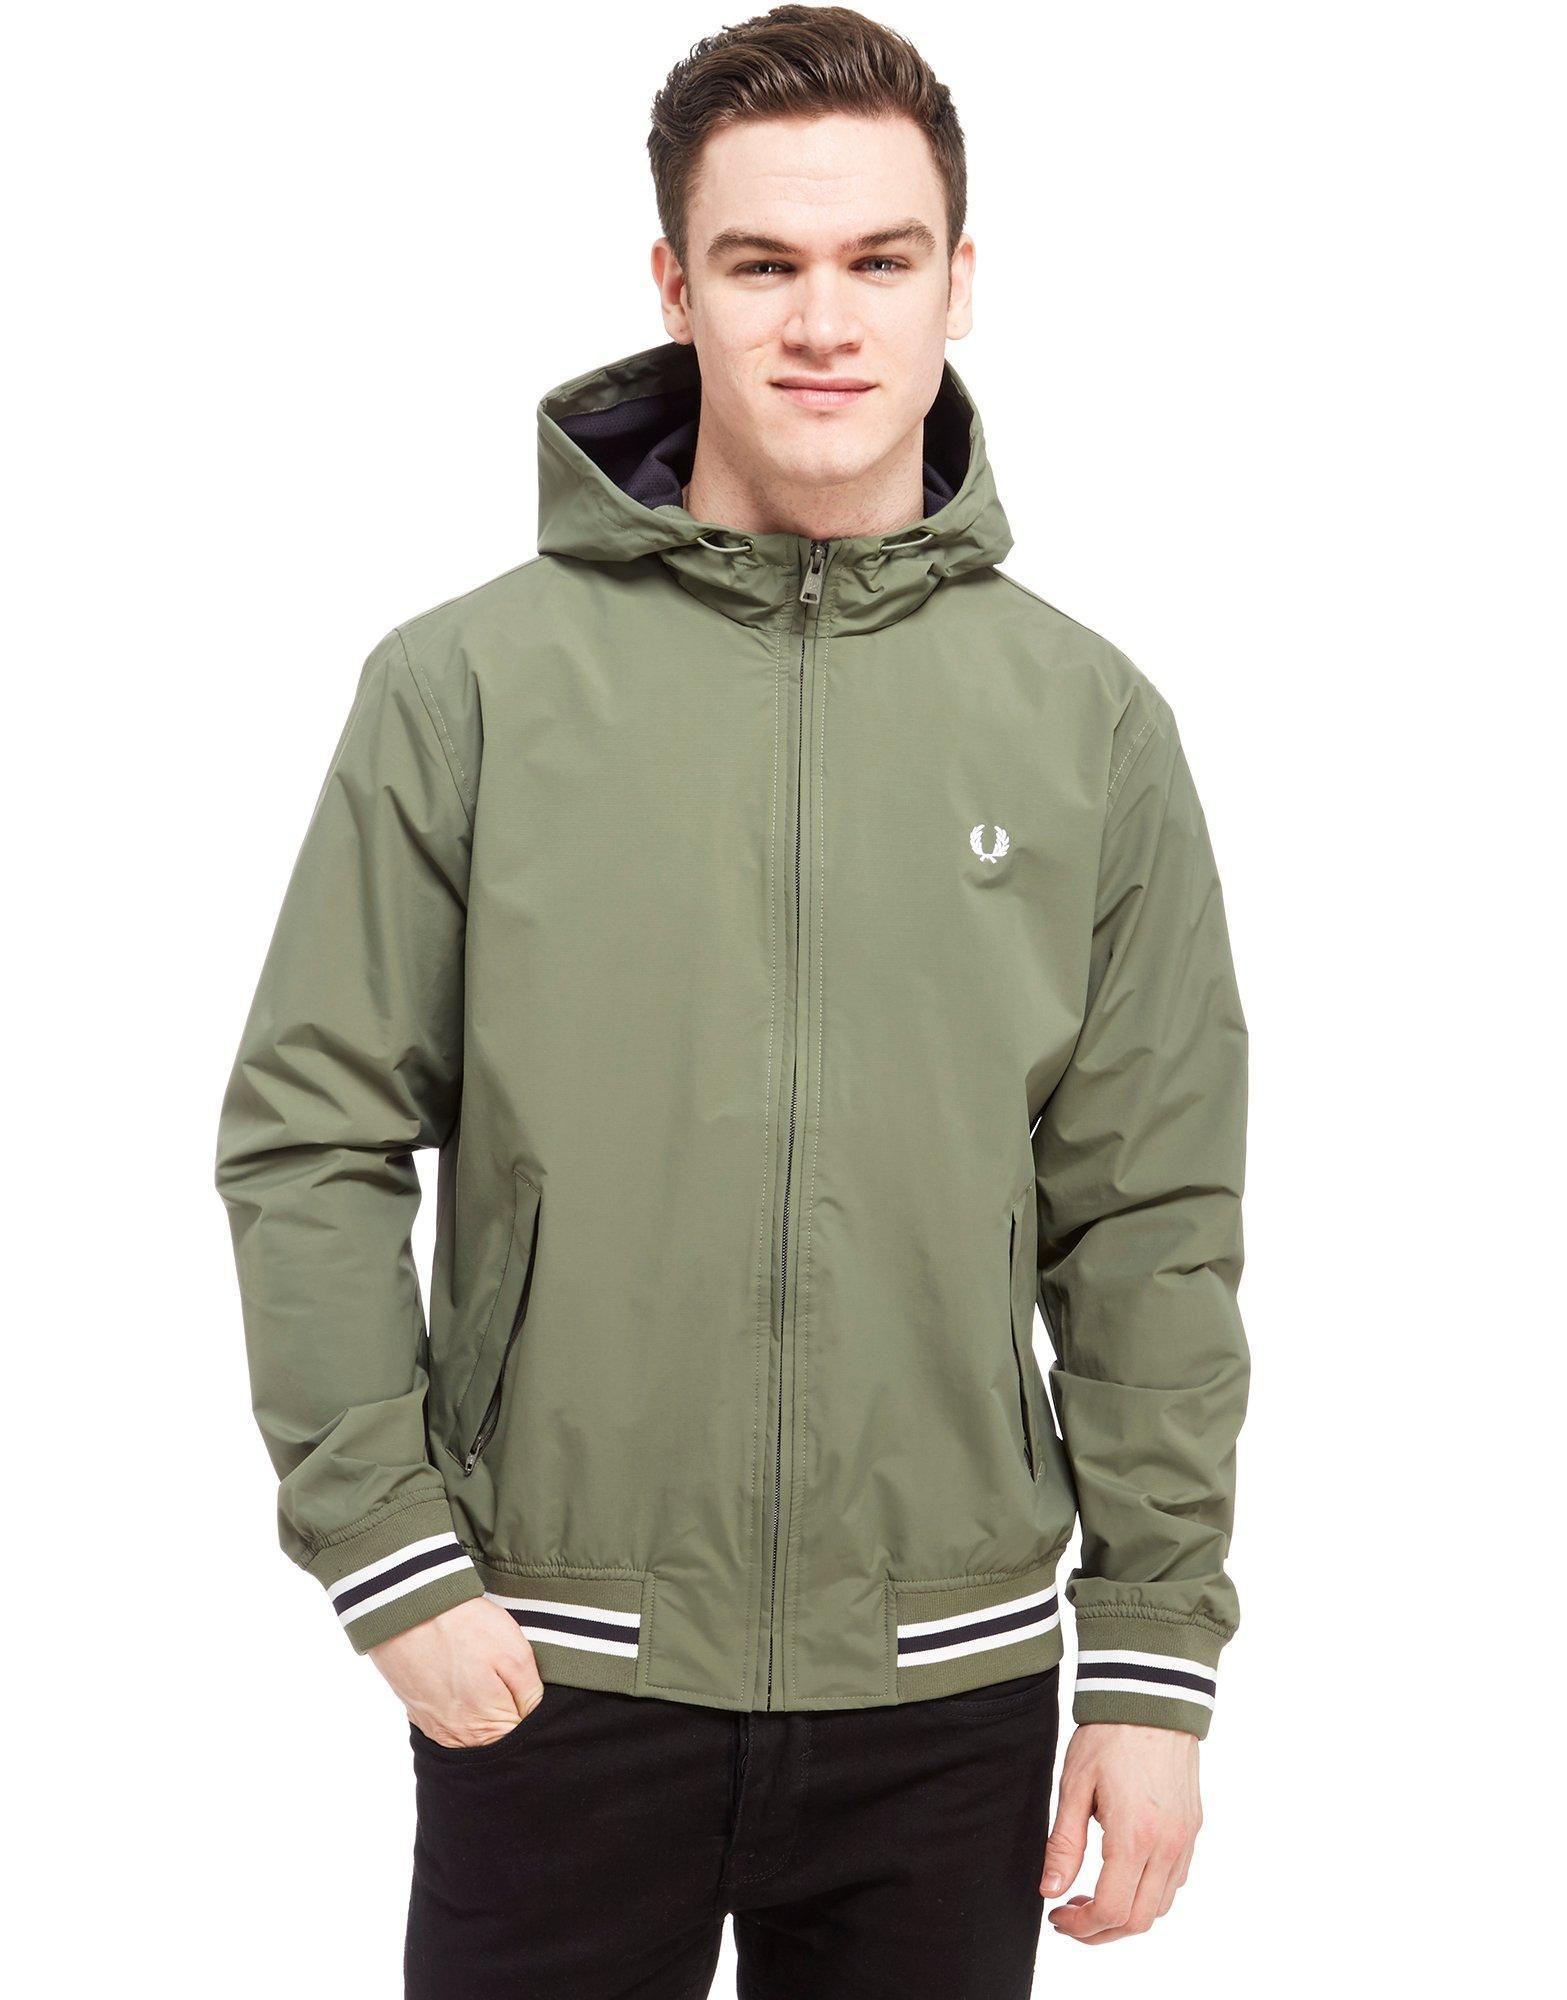 lyst fred perry hooded brentham jacket in green for men. Black Bedroom Furniture Sets. Home Design Ideas